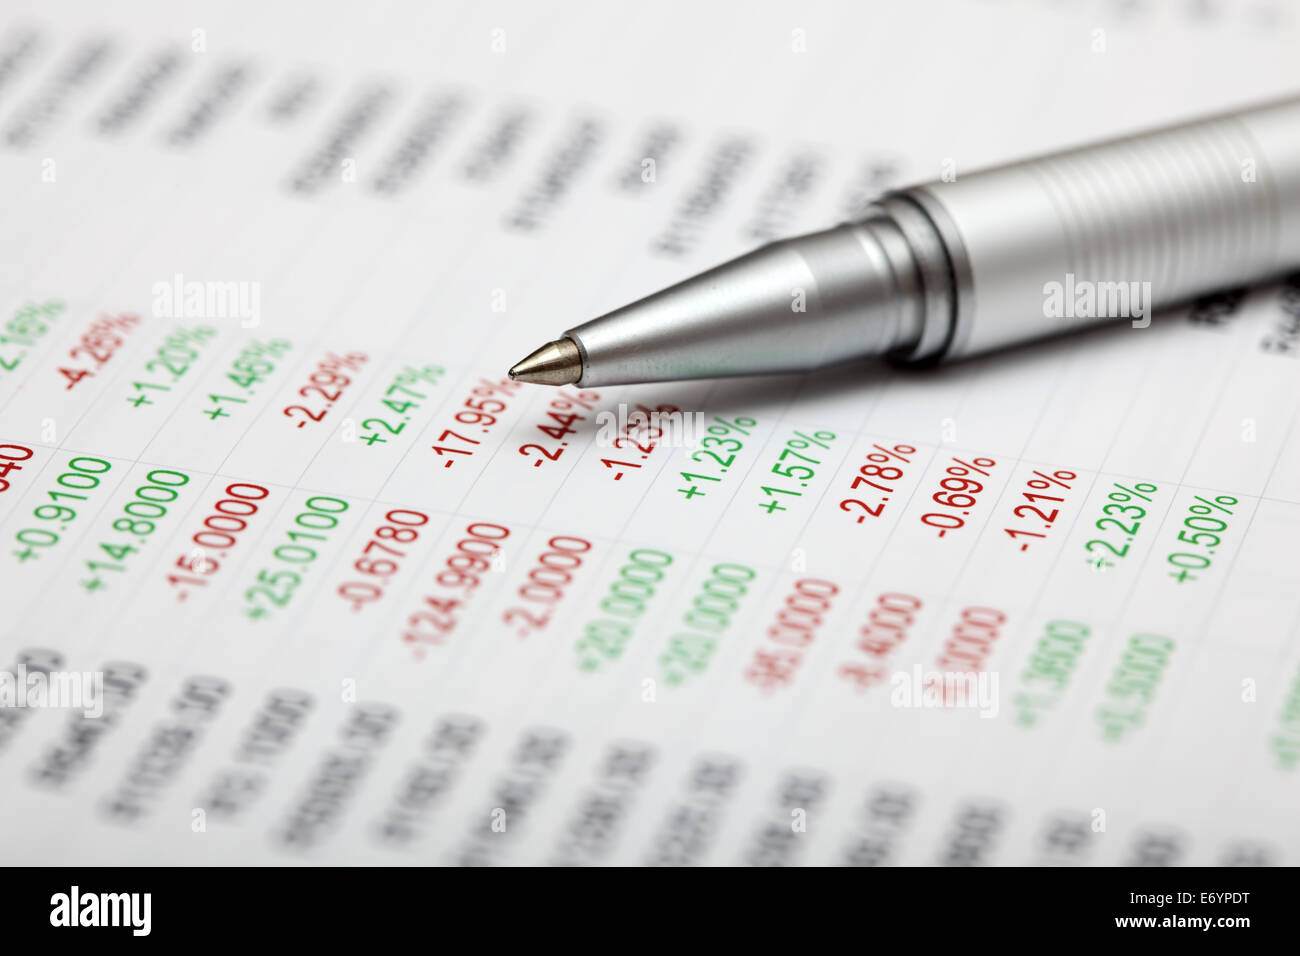 Analysis of financial statements. Focus on pen. Shallow depth of field. Closeup. - Stock Image